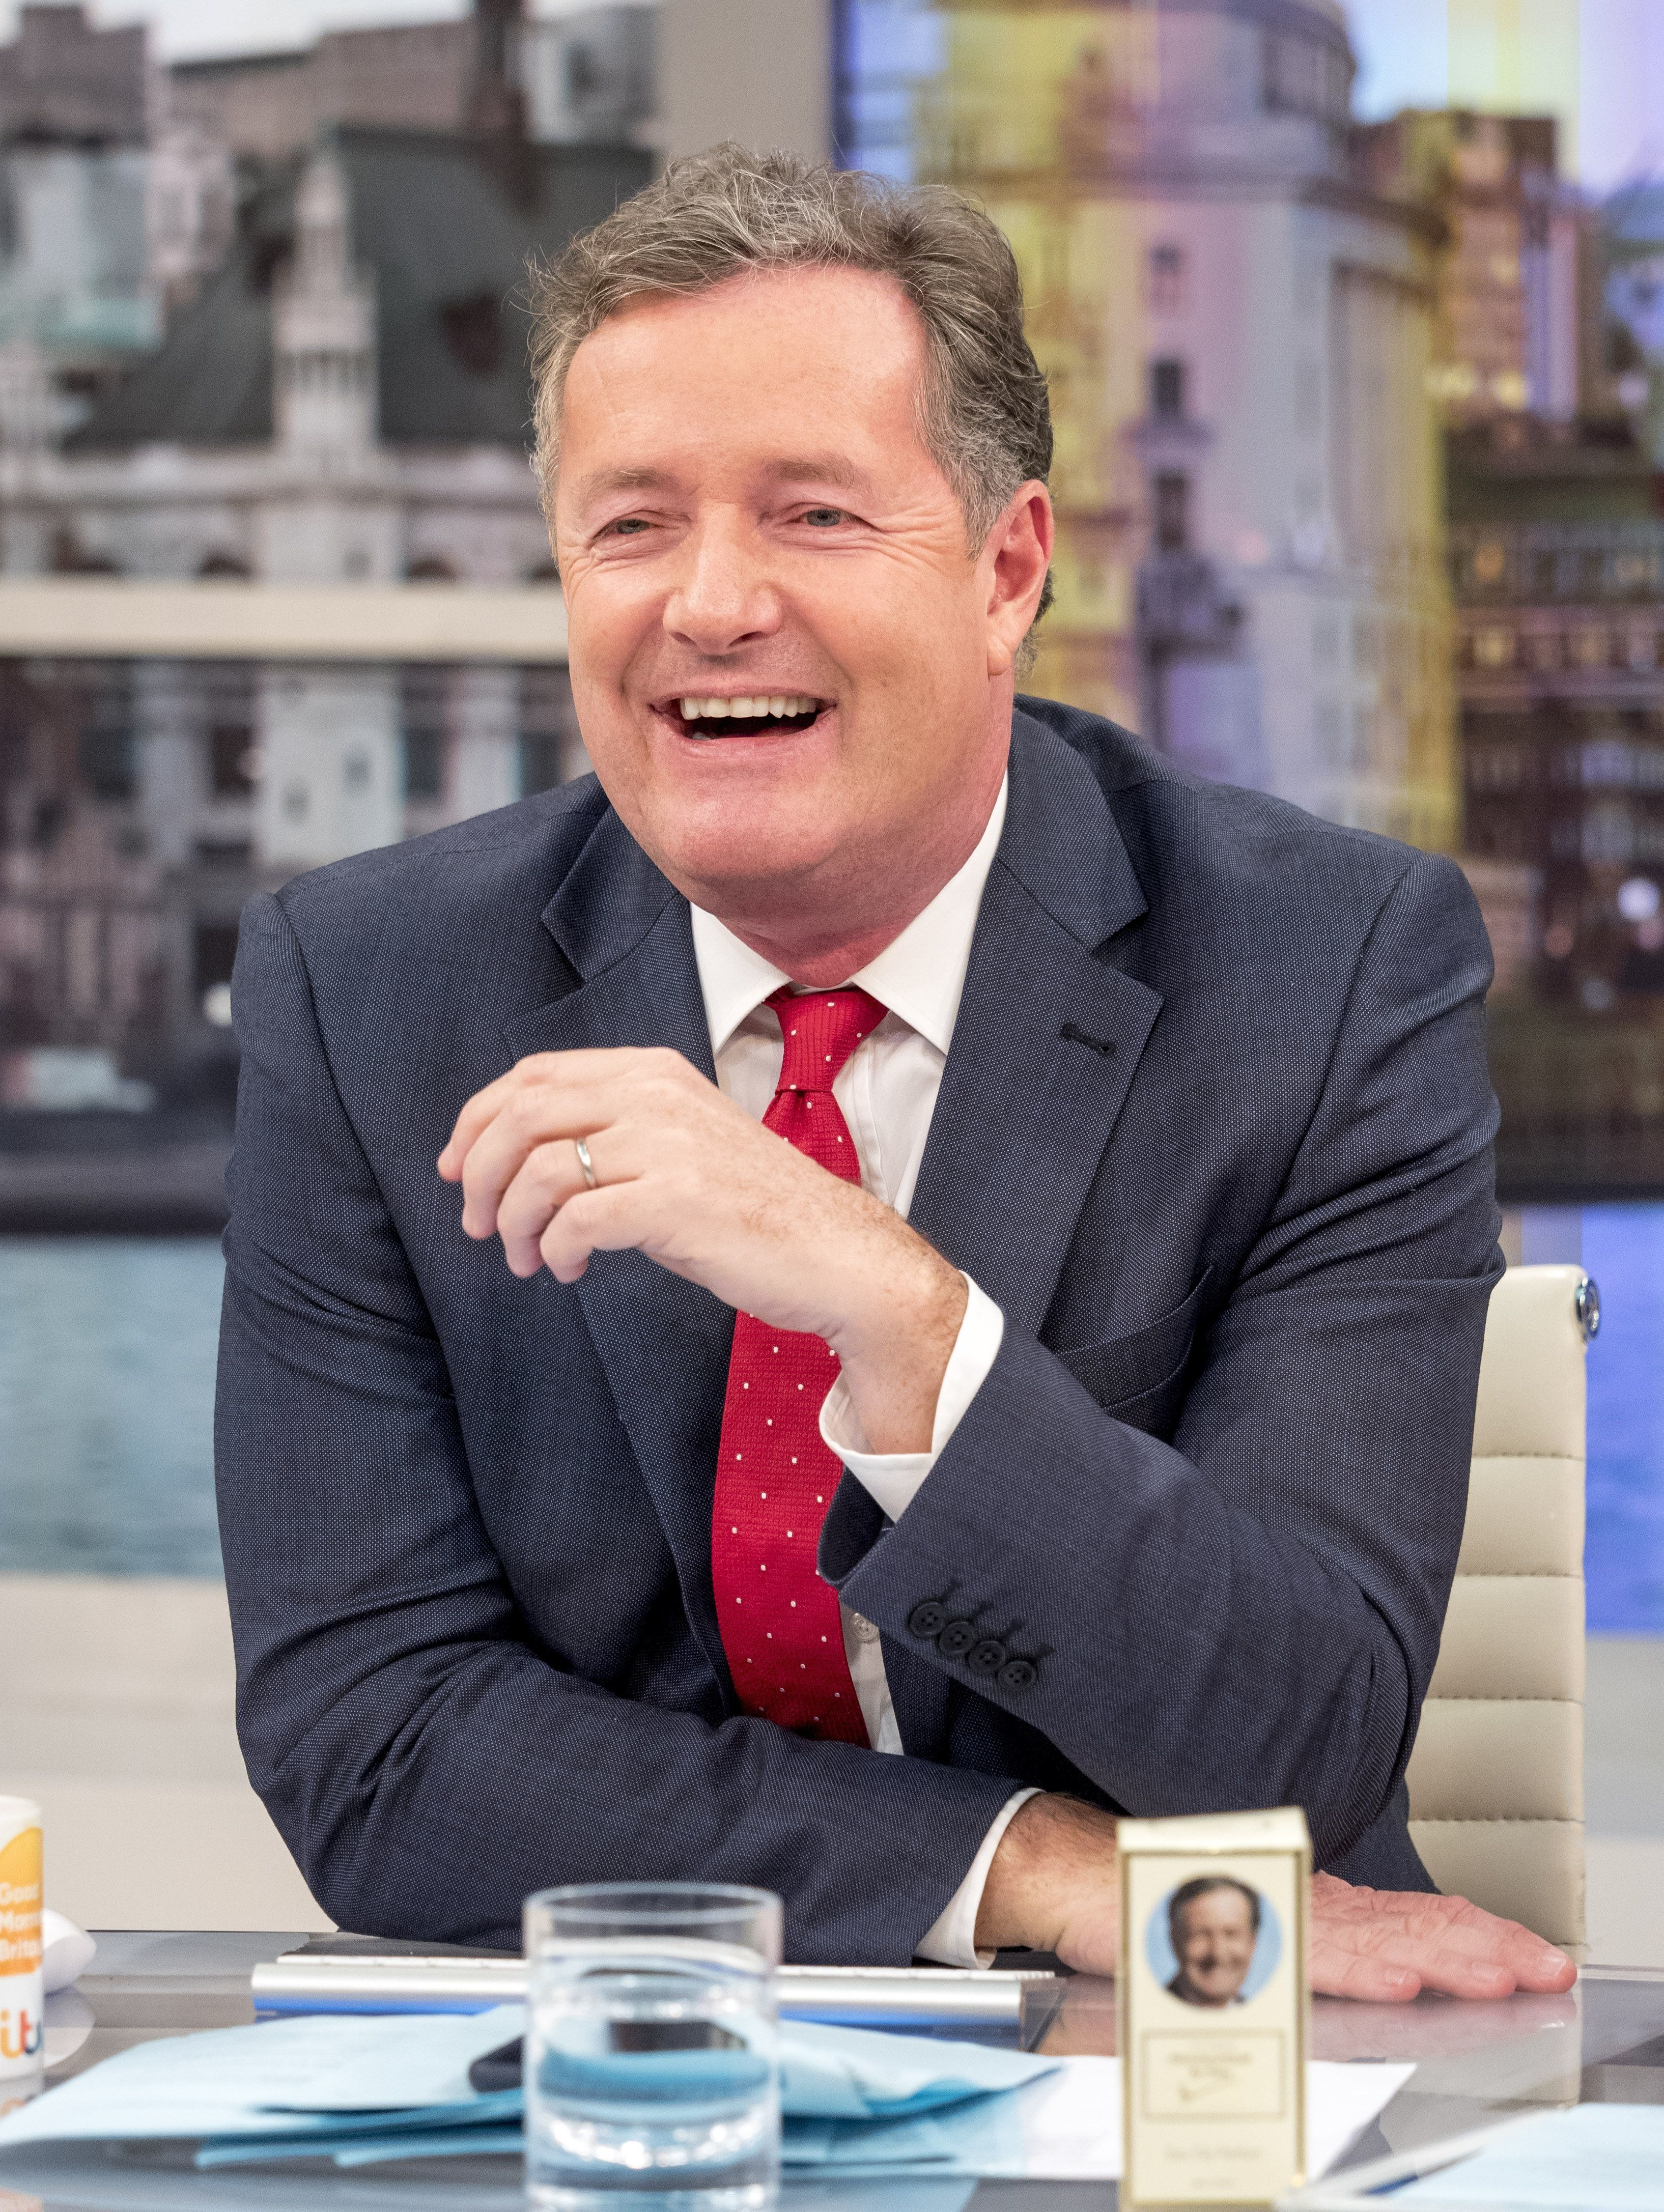 Piers Morgan Is Going To Be On 'Good Morning Britain' For At Least Another Two